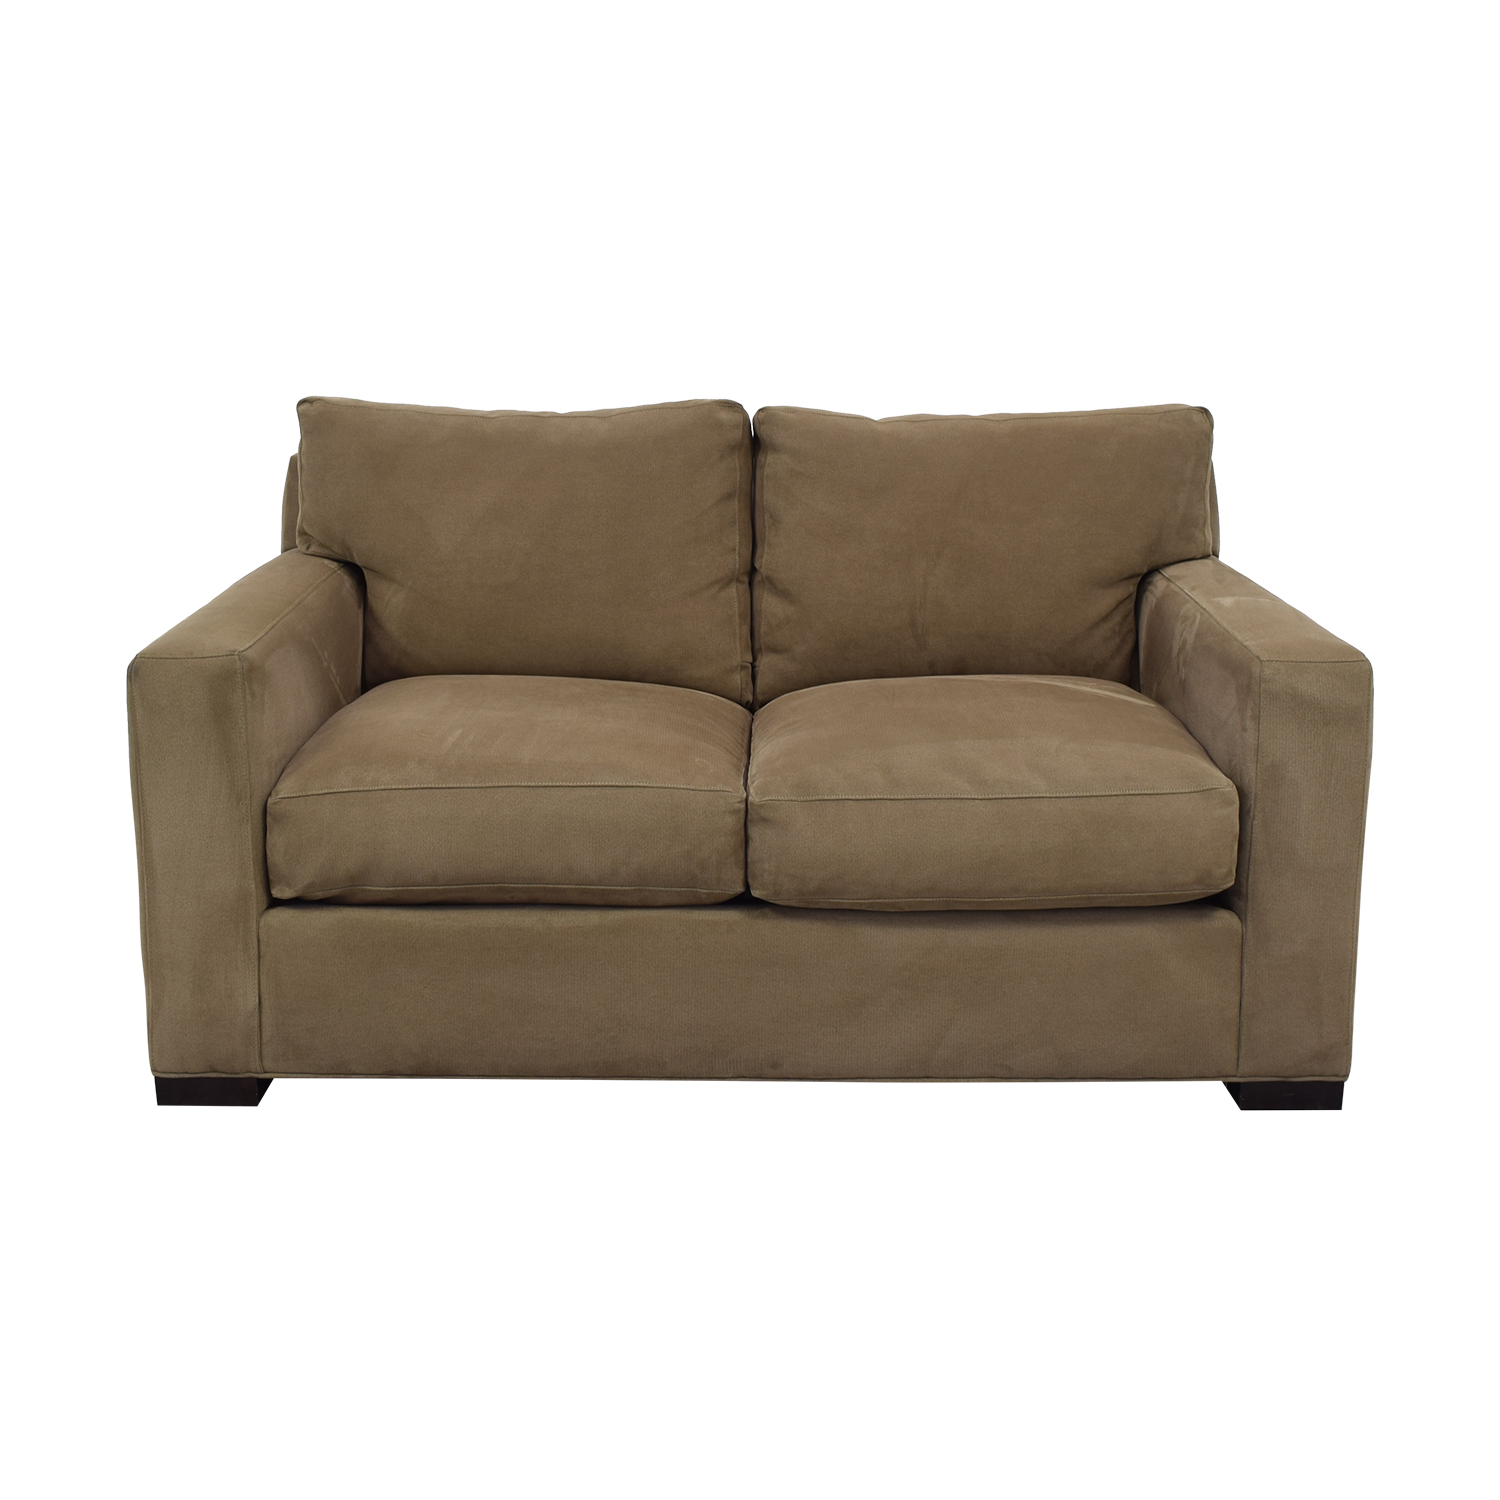 Crate & Barrel Crate & Barrel Axis II Loveseat coupon